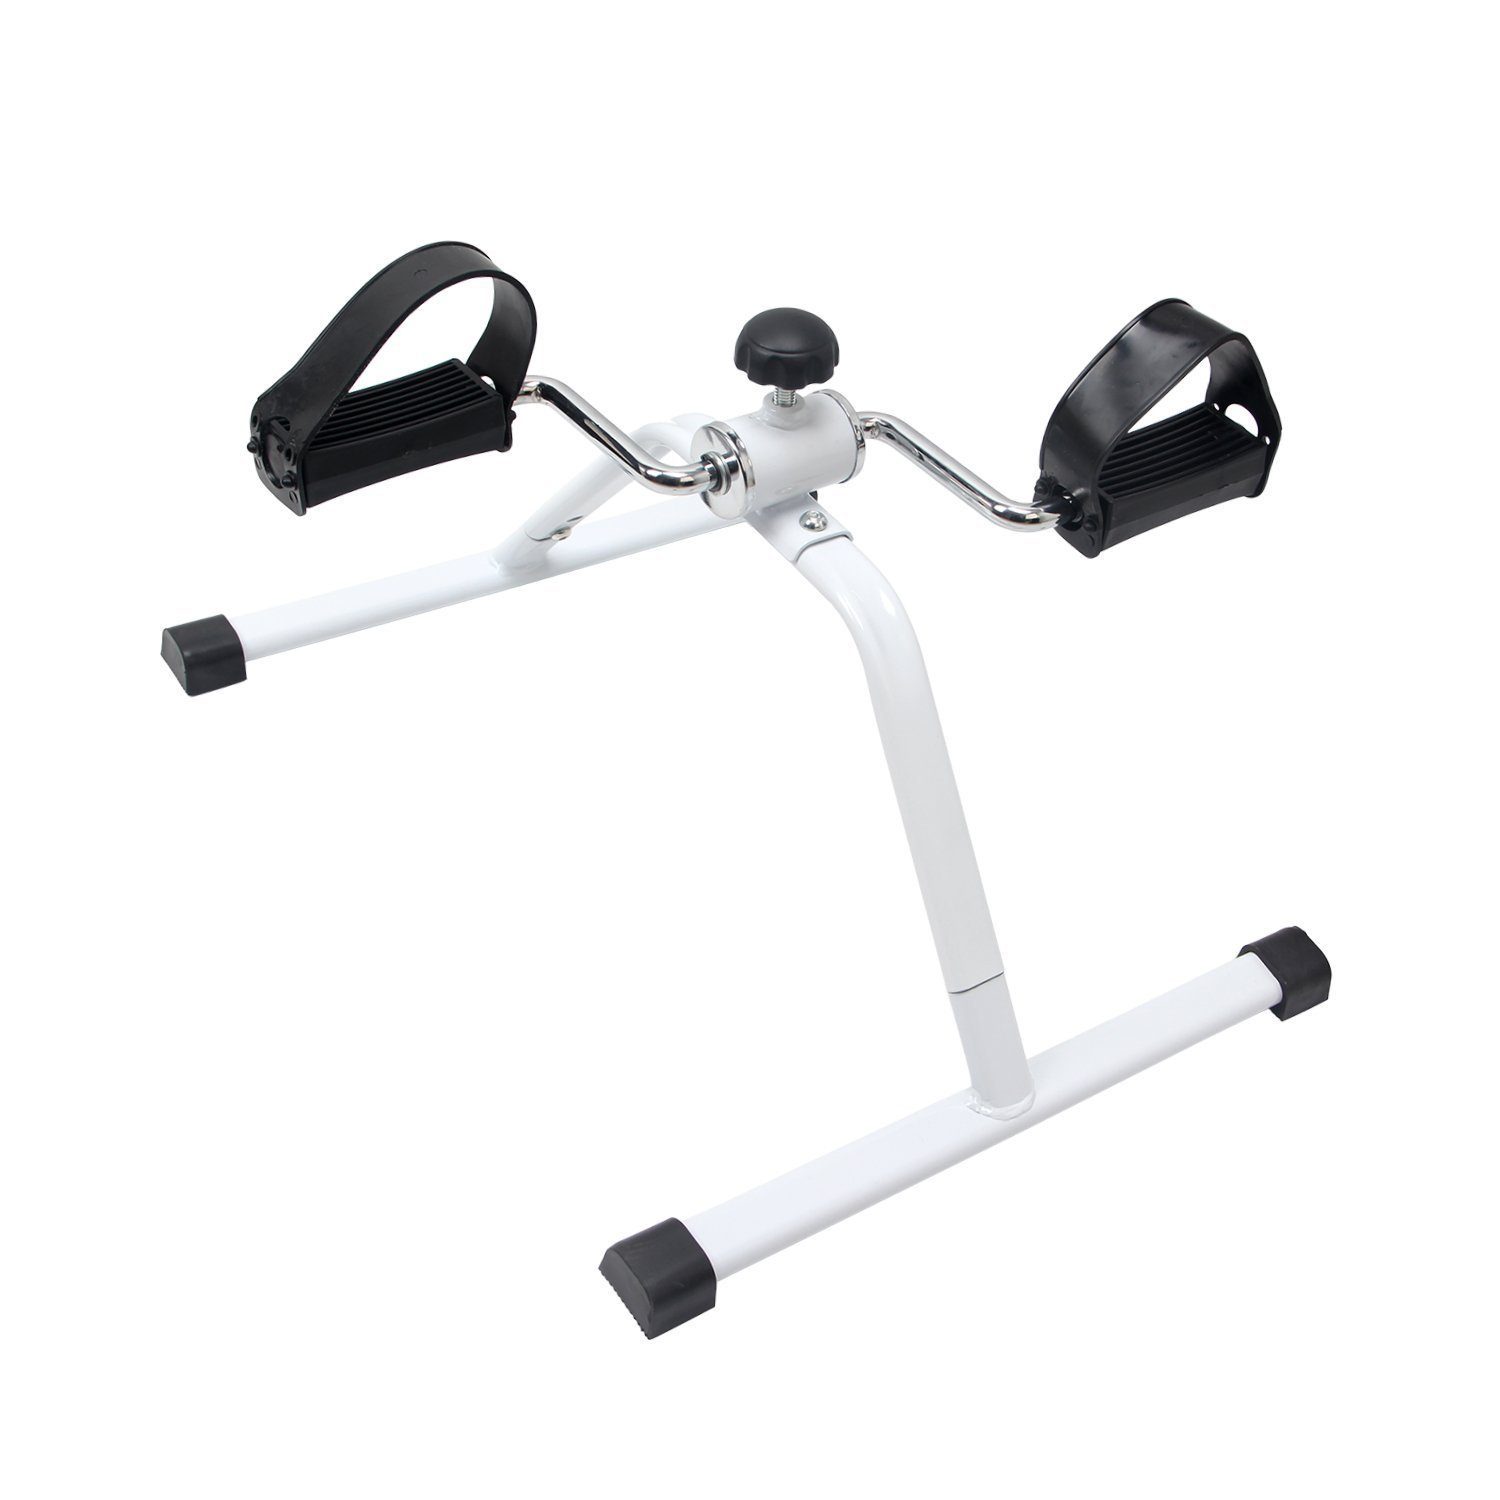 EXEFIT Pedal Exerciser Desk Bike For Leg and Arm Recovery Medical Cycling Exerci